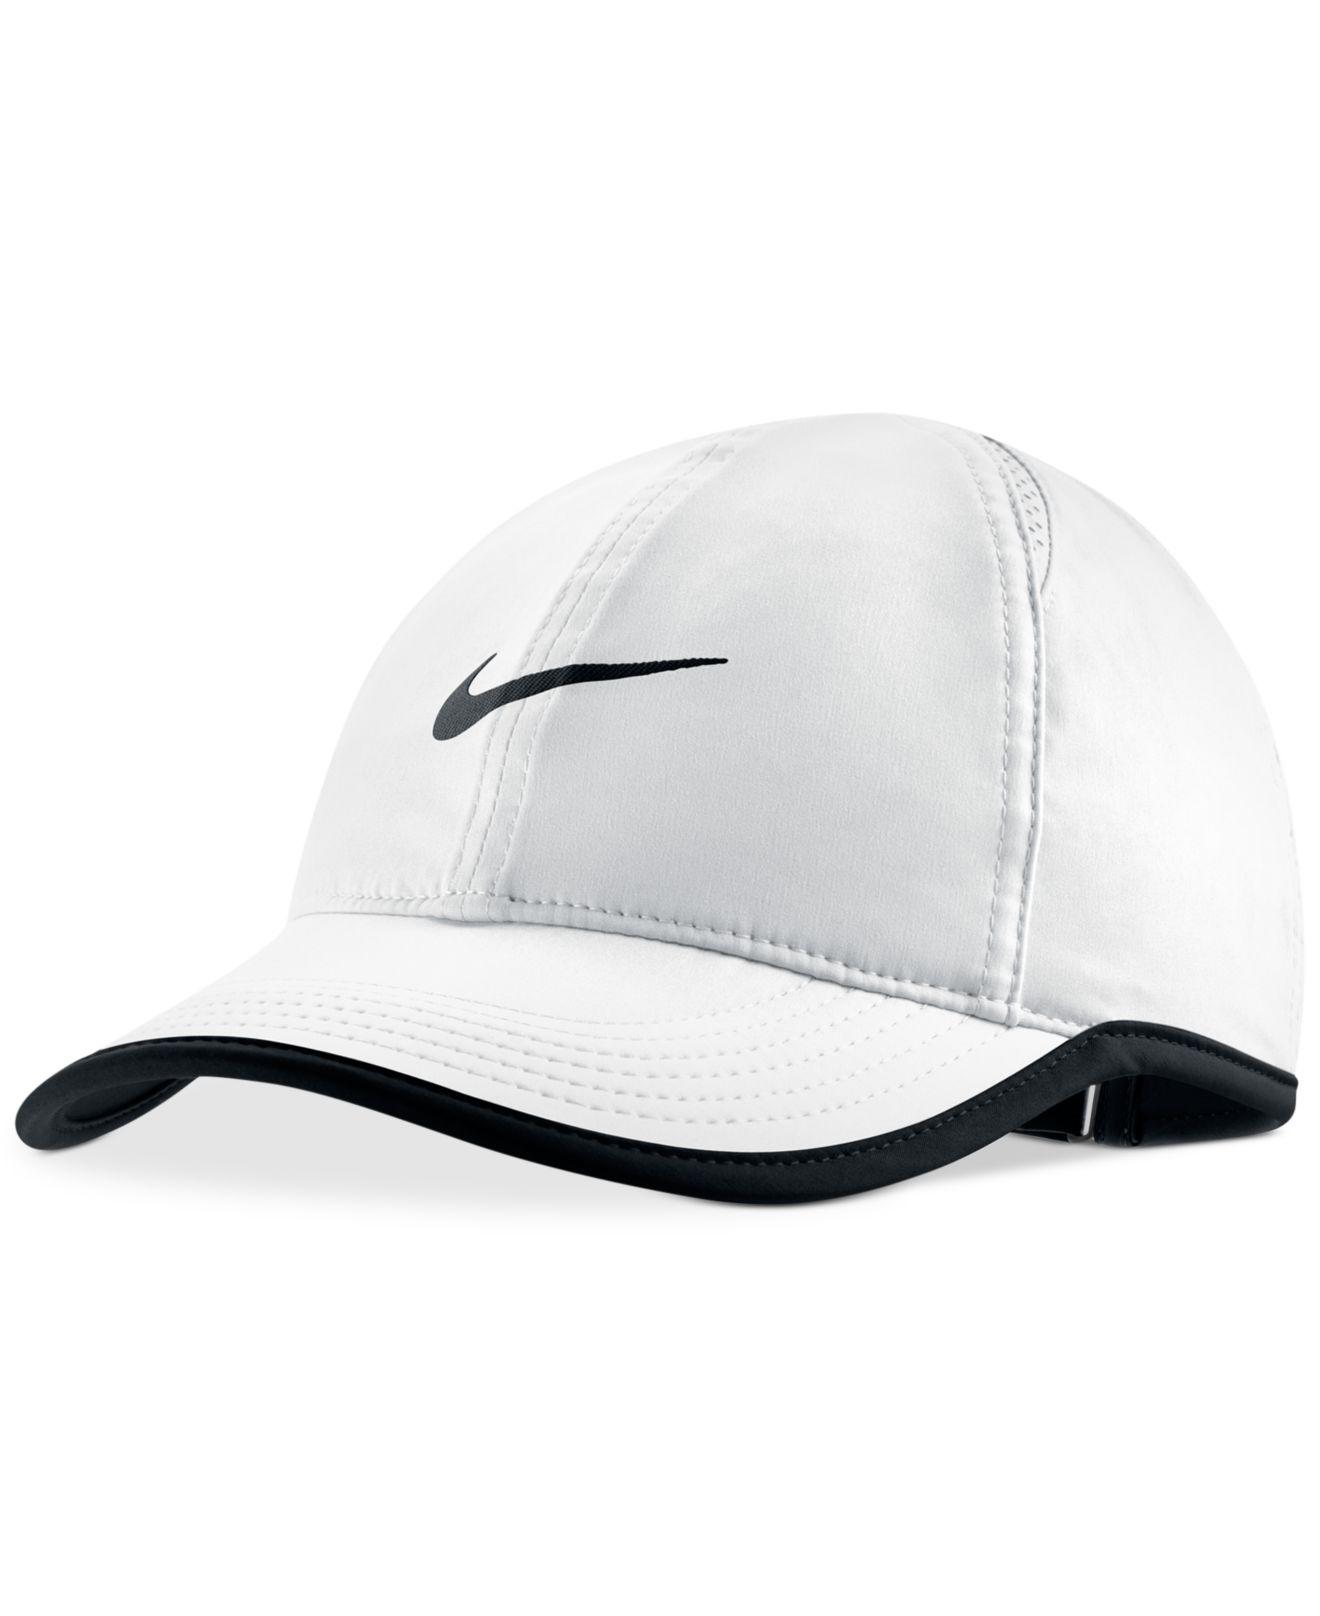 Lyst - Nike Dri-fit Featherlight Cap in White 71d5f4ad045f